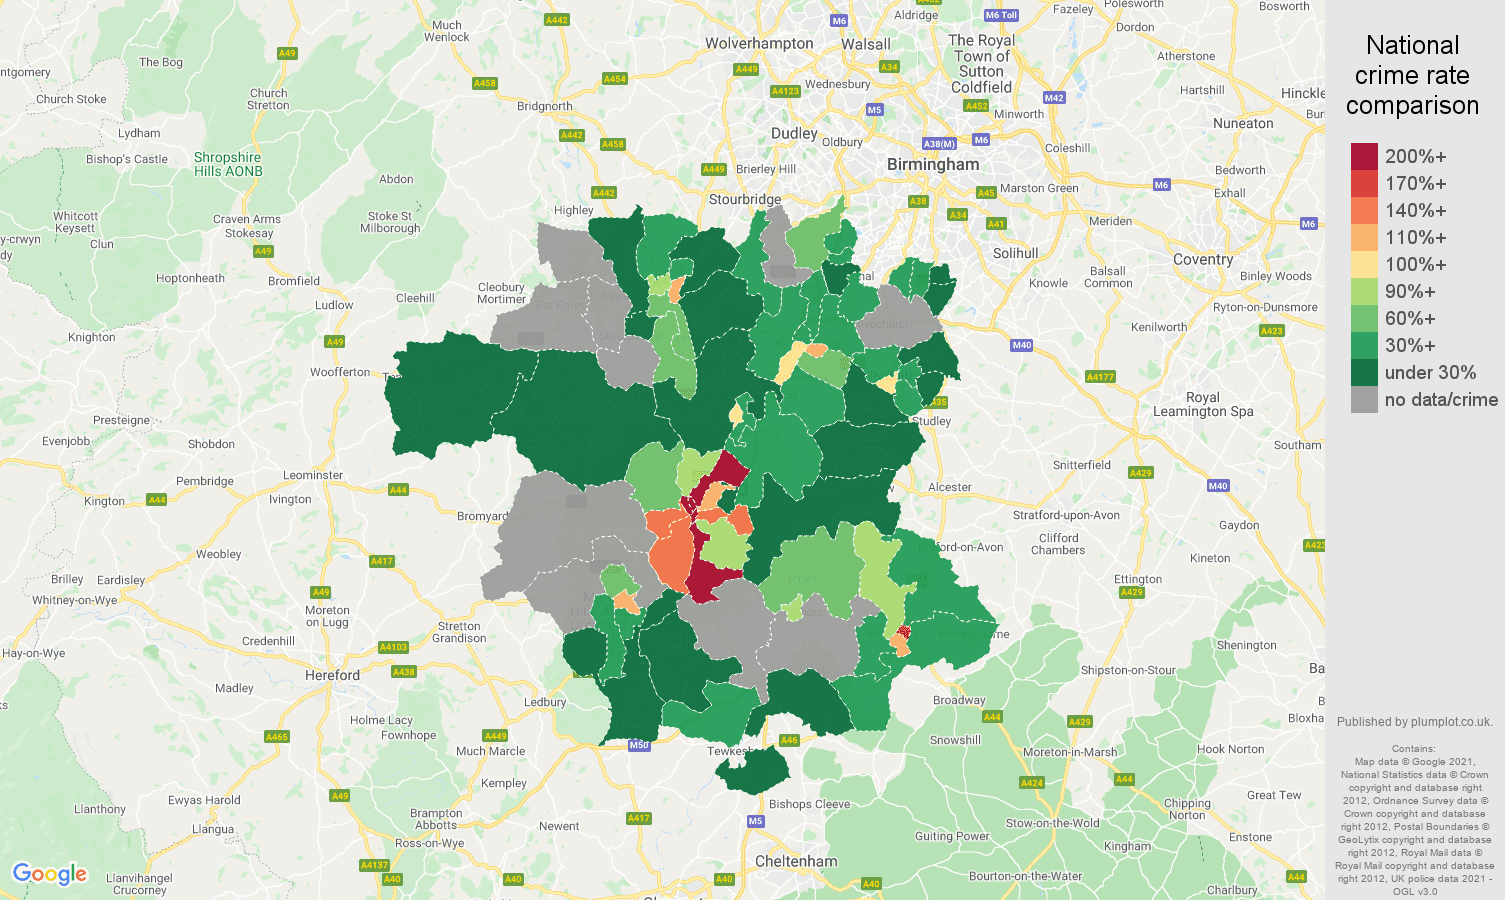 Worcestershire bicycle theft crime rate comparison map